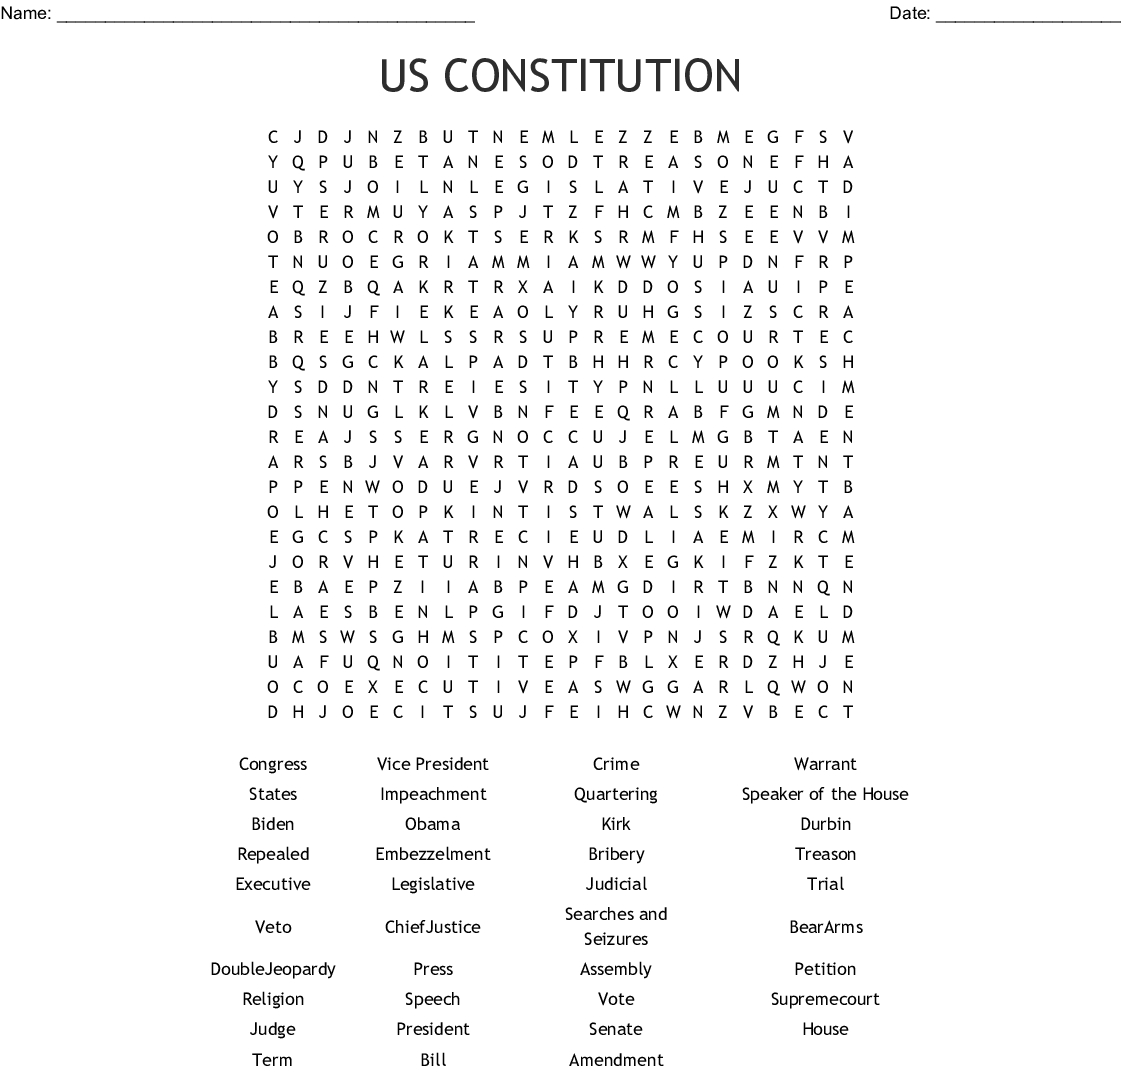 Us Constitution Word Search - Wordmint